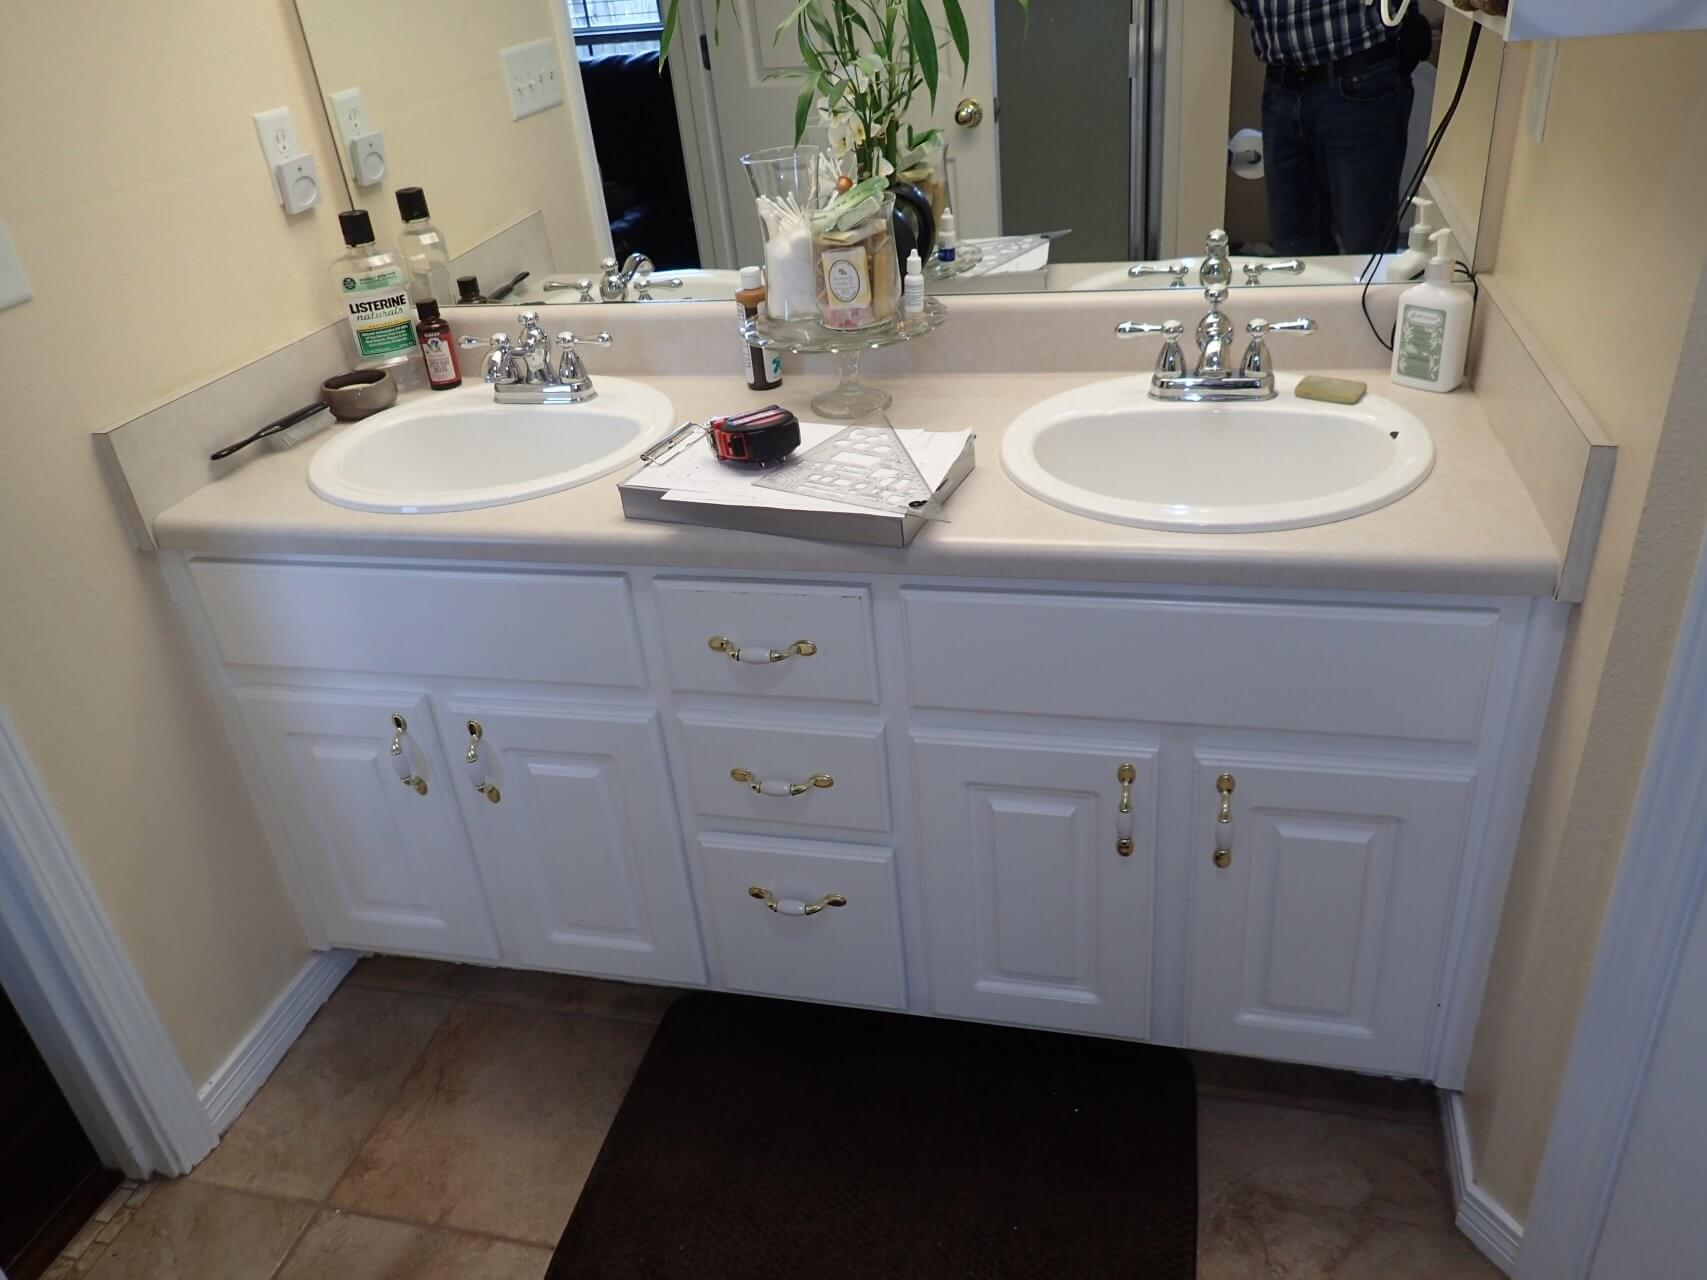 Before: Outdated bathroom counter and sinks